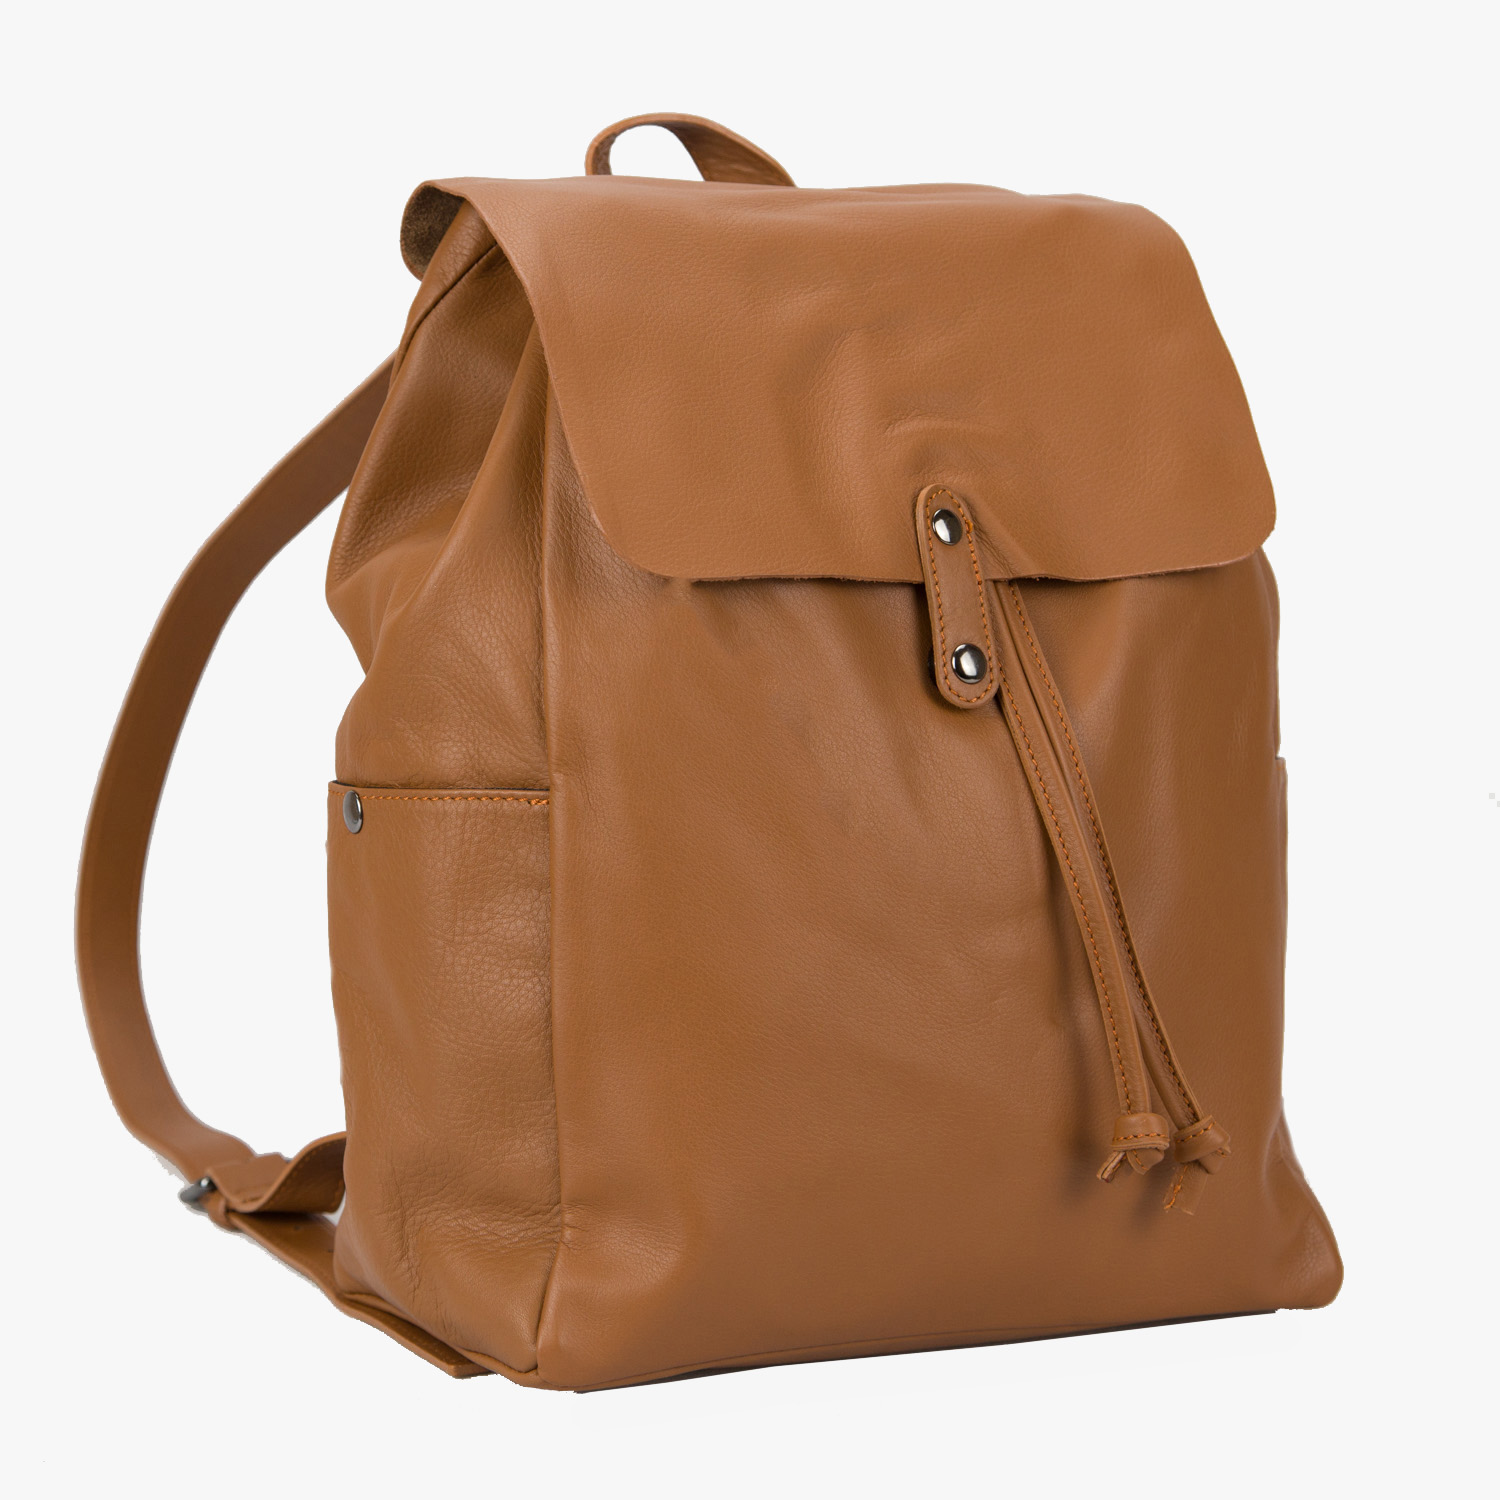 N1715 Women s leather backpack - Pelletteria Veneta 12e9fec65b